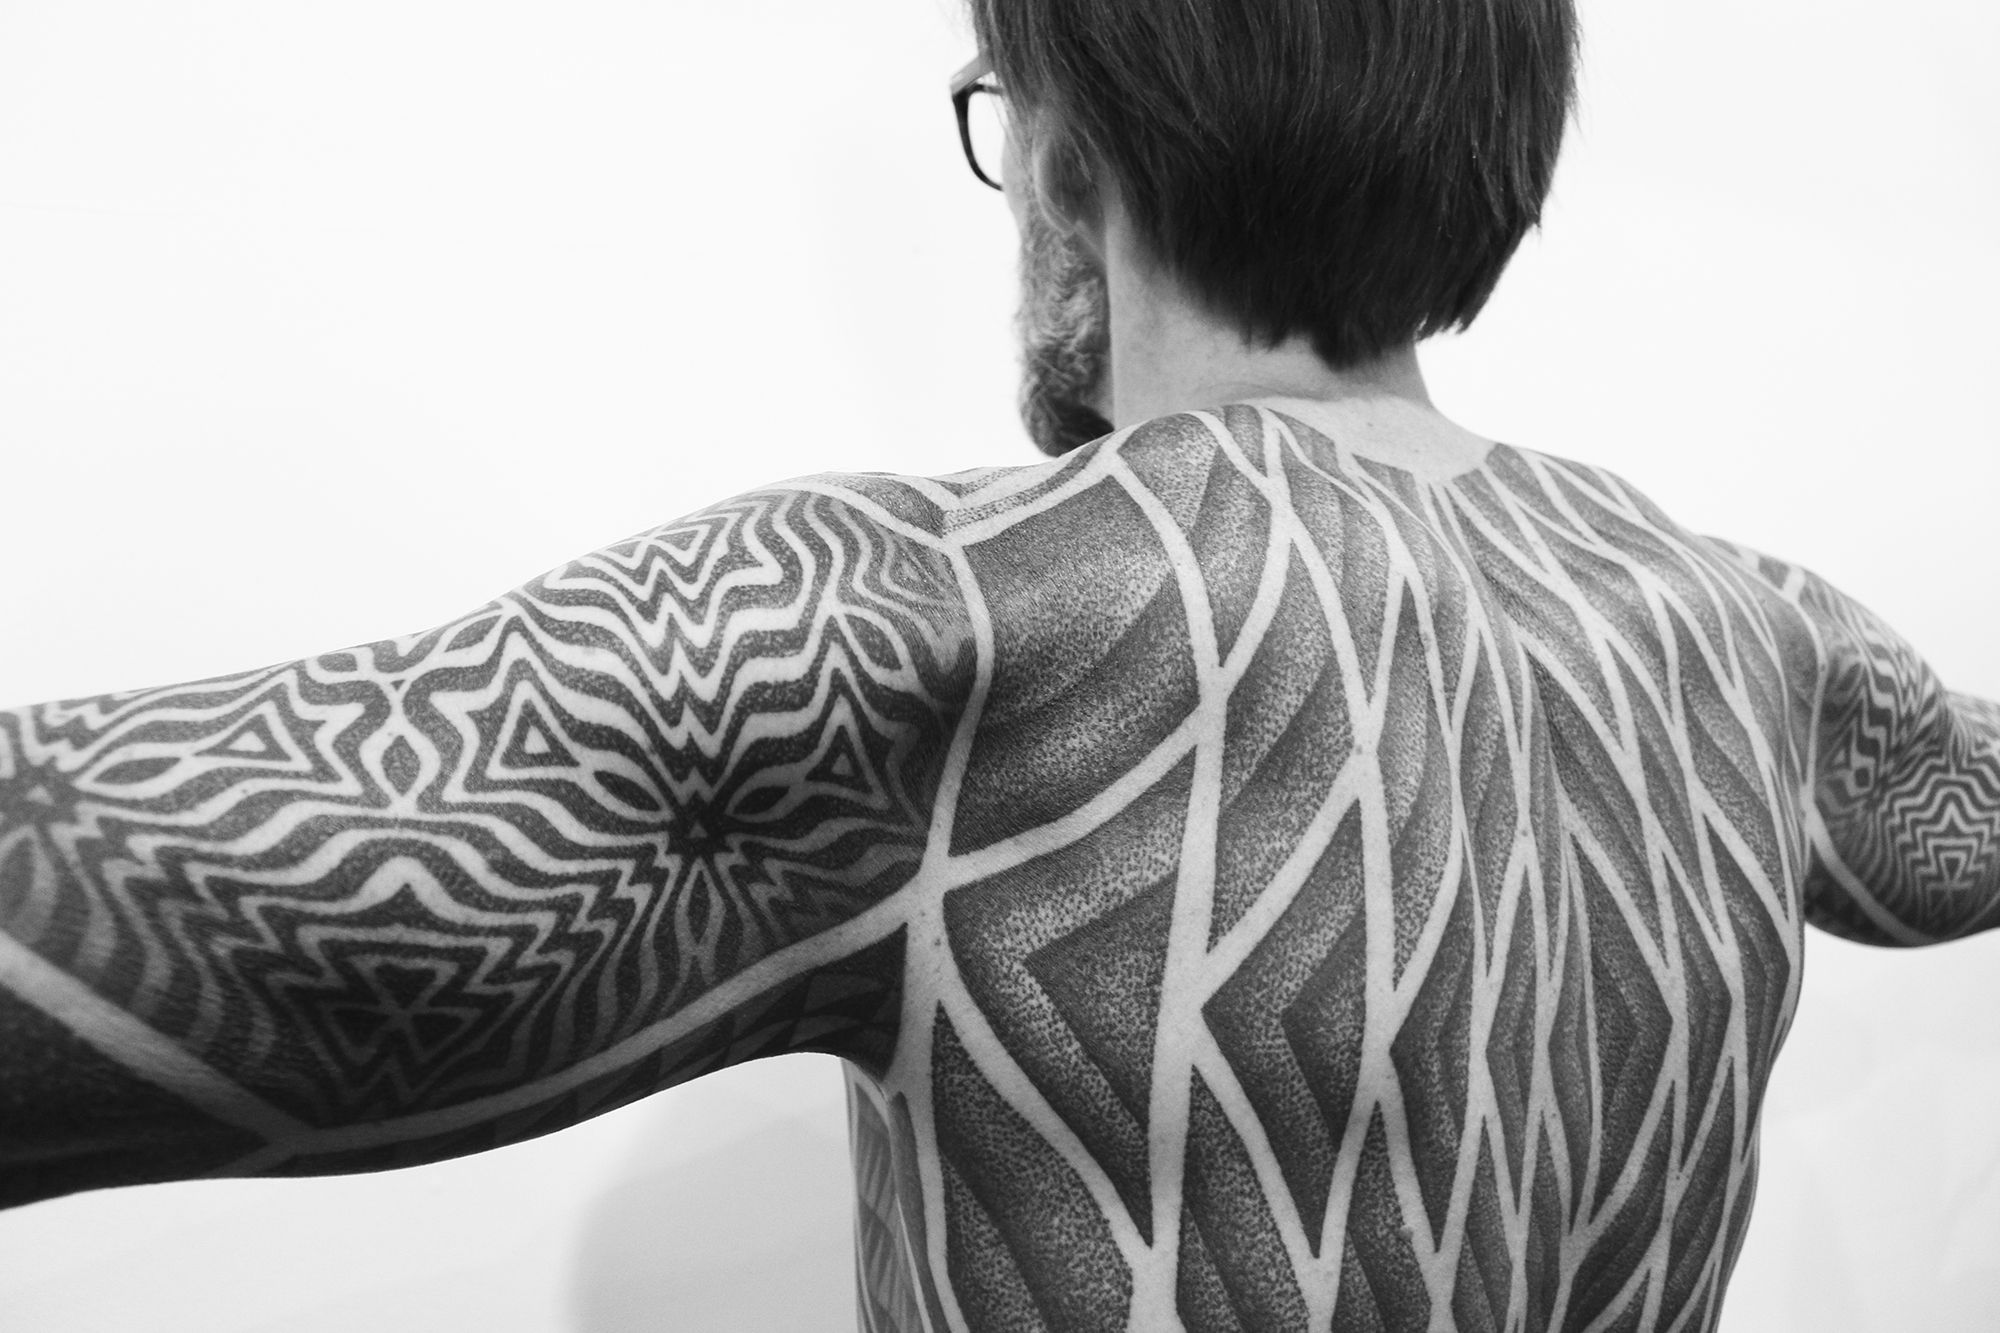 eric tattooed with bodysuit, dotwork by lewisink, photo by scene360